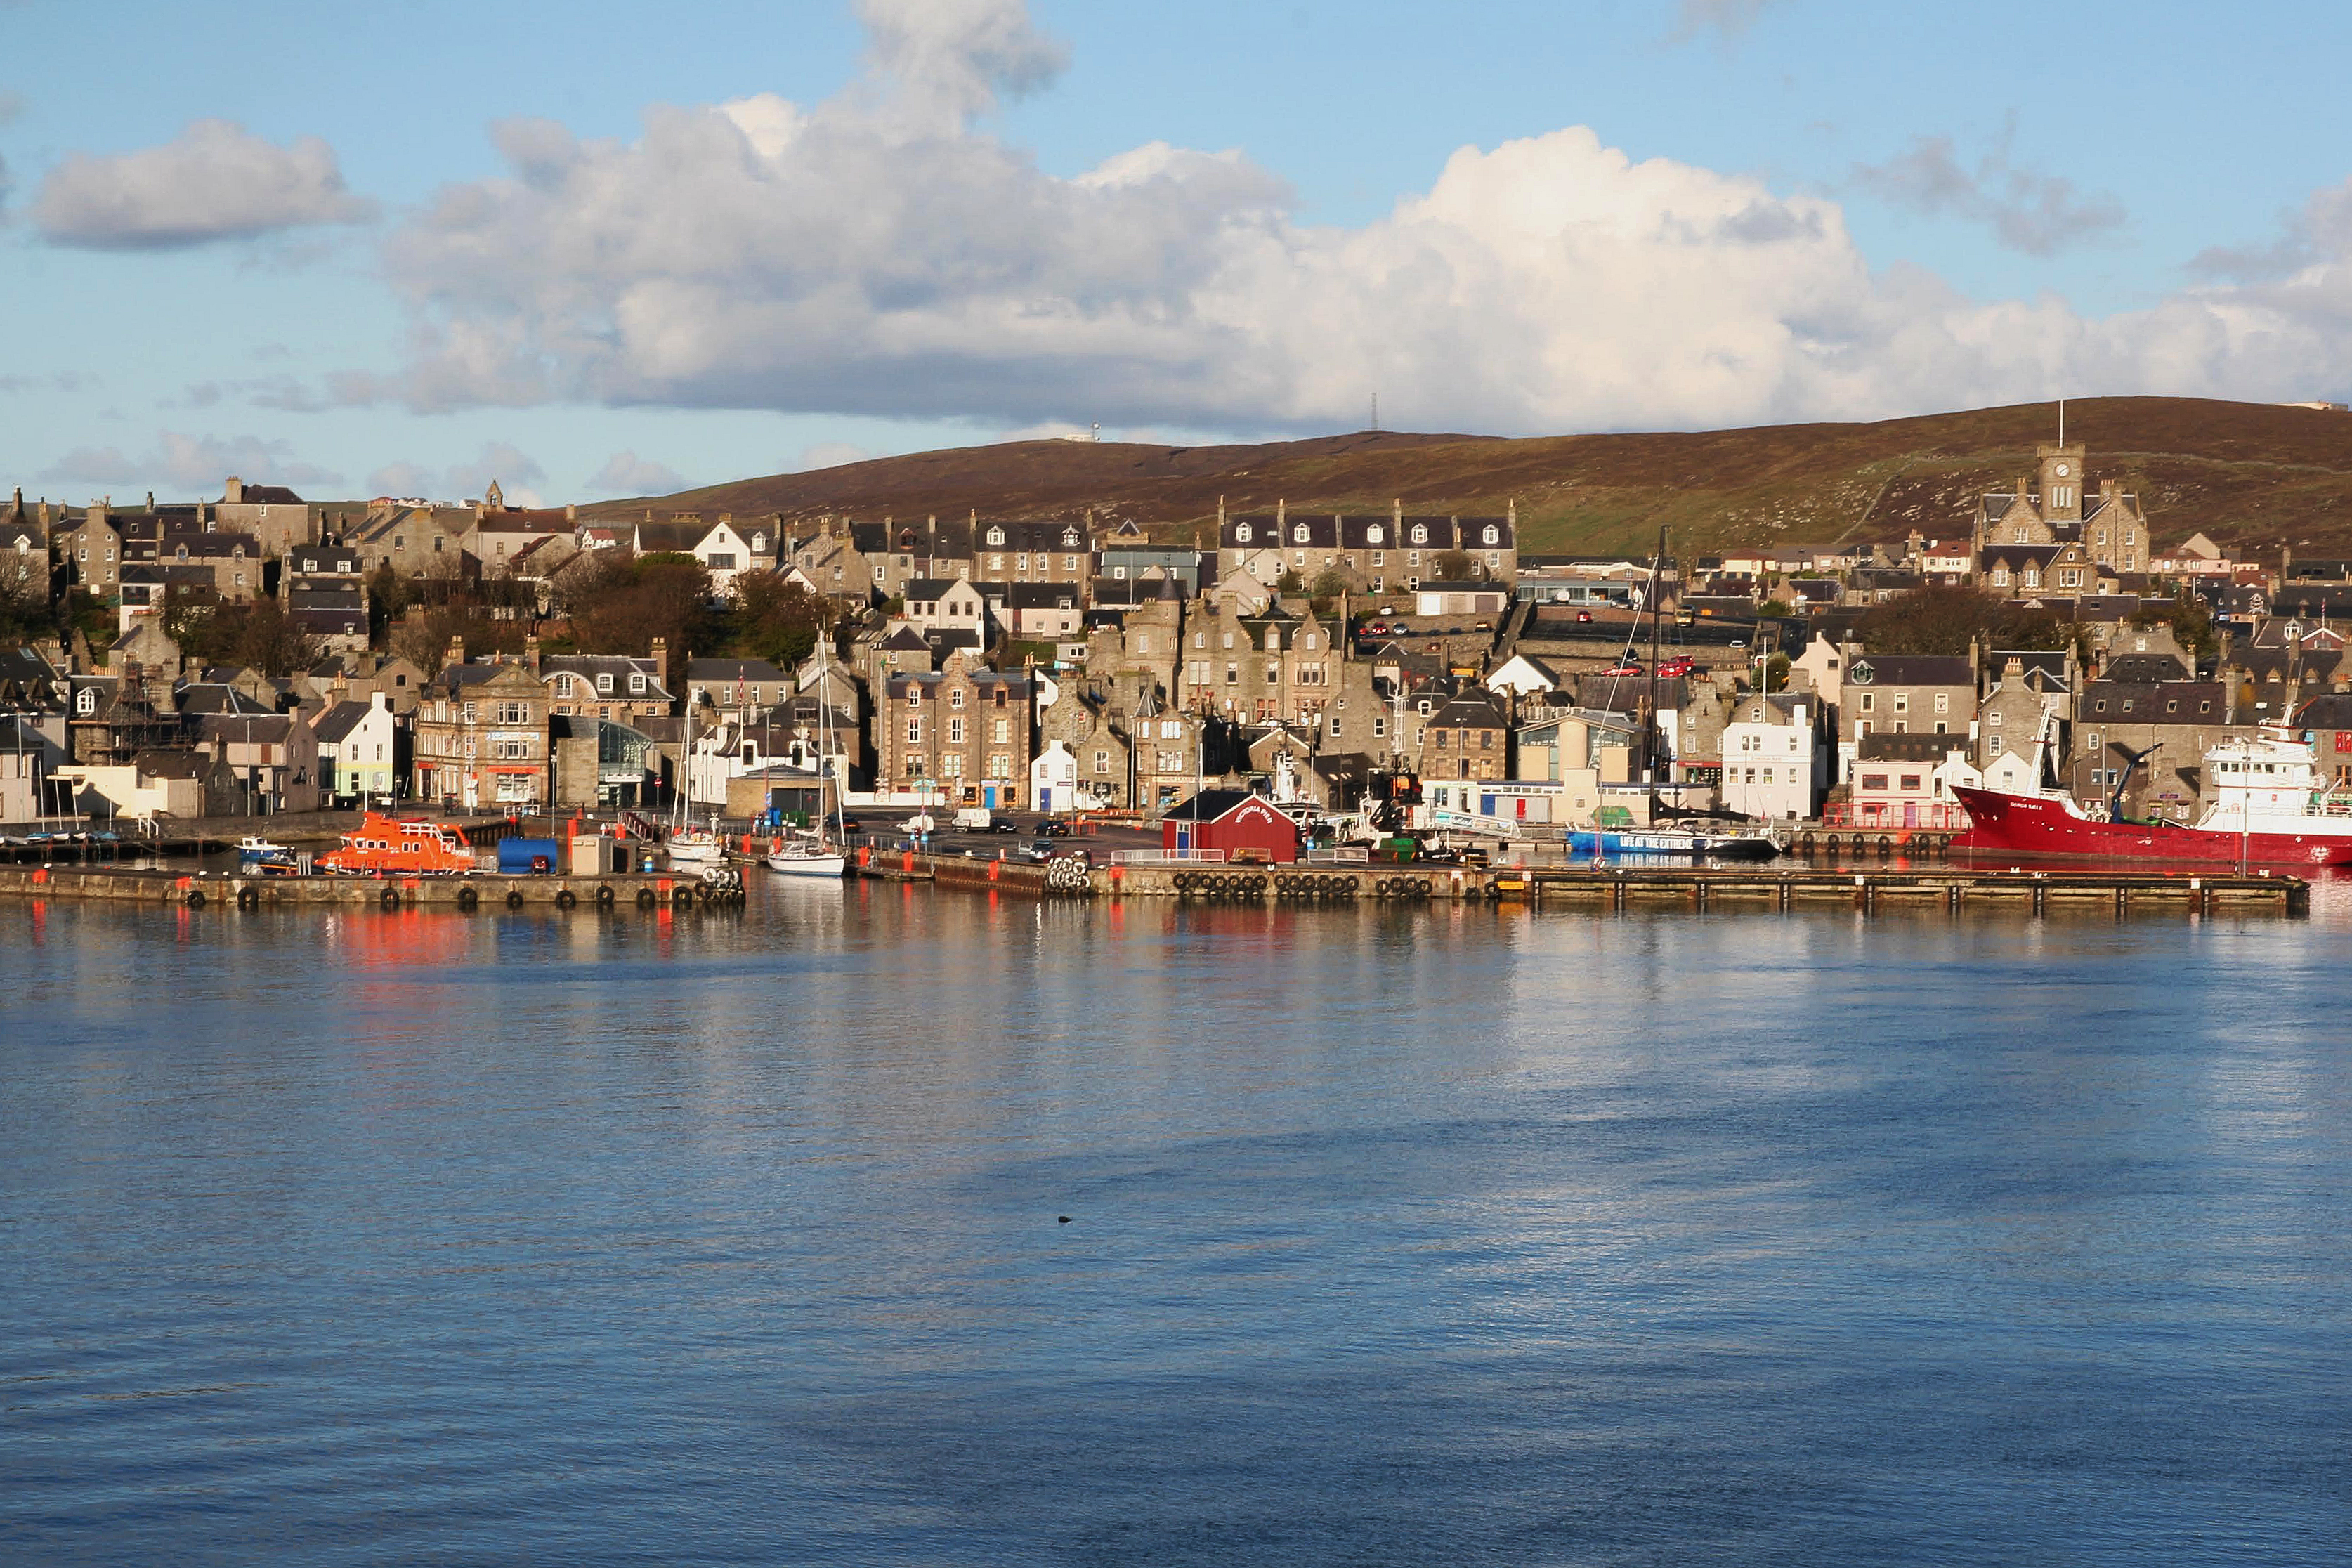 File:Lerwick, view from a ferry.jpg - Wikimedia Commons